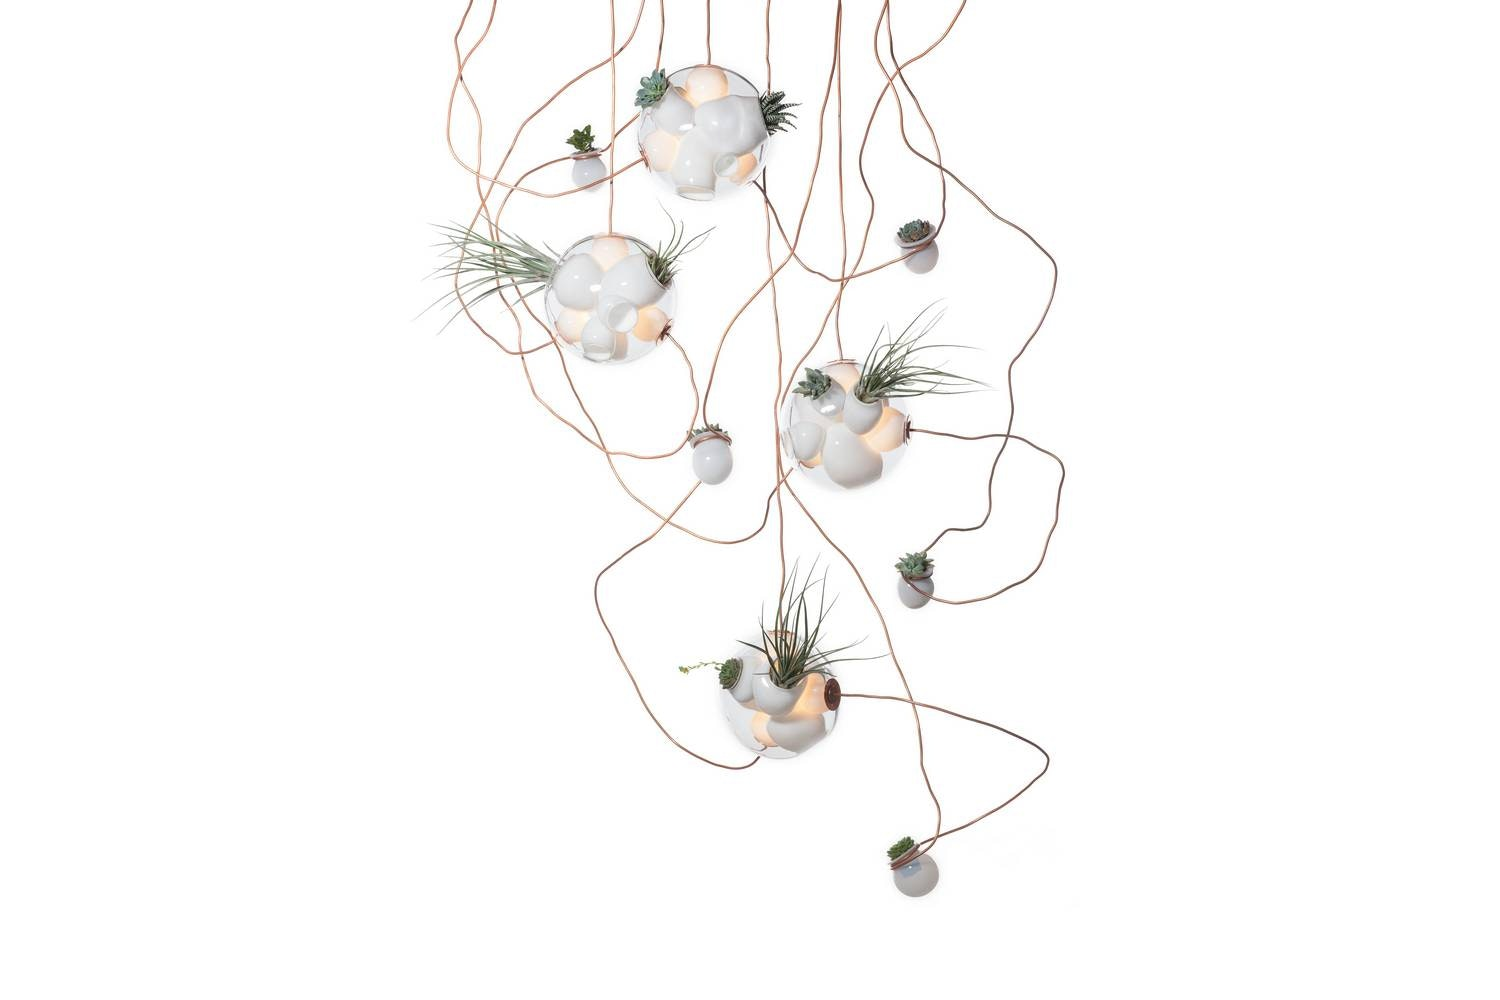 38.11 Suspension Lamp by Omer Arbel for Bocci